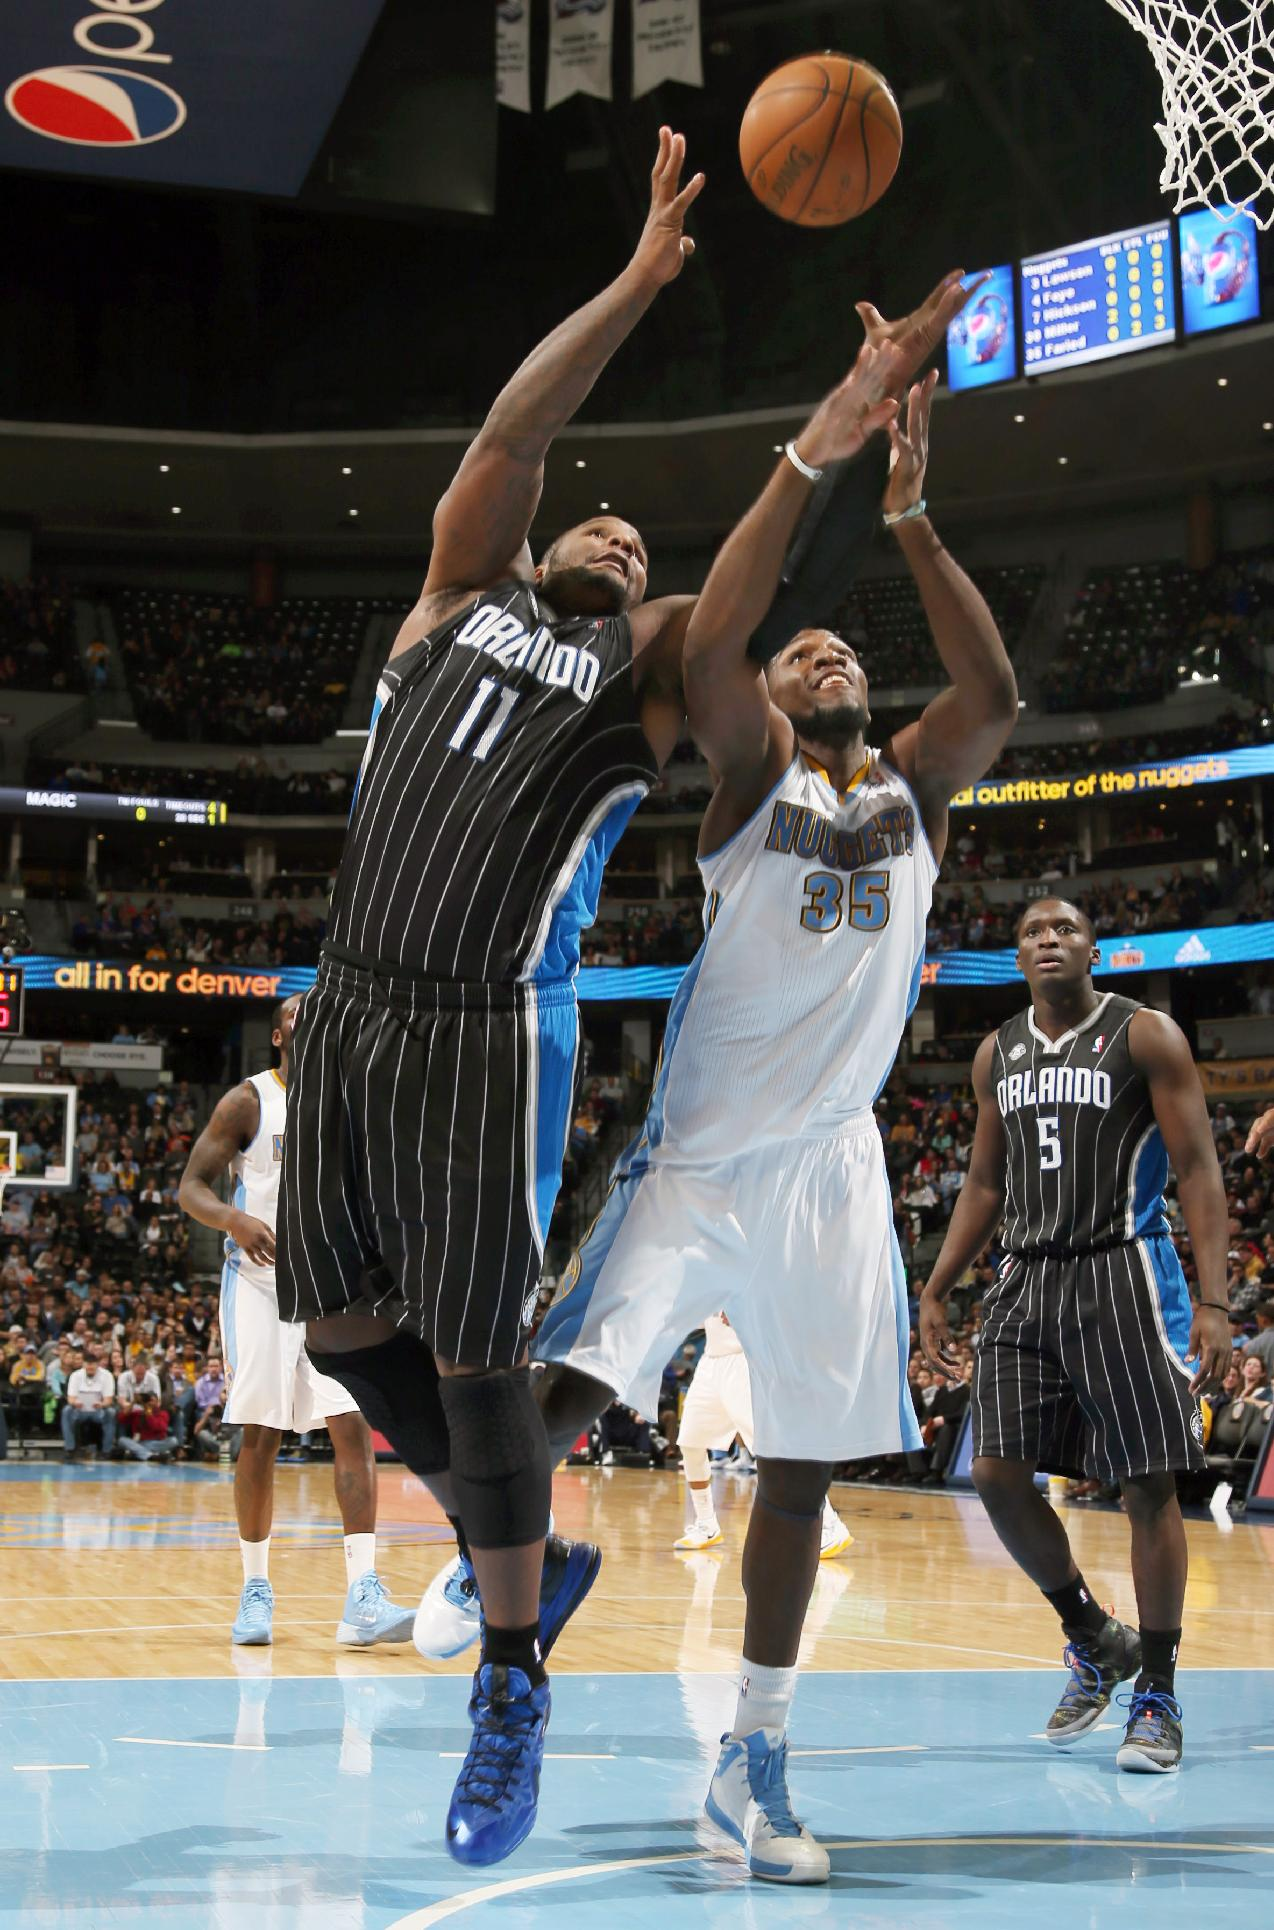 Orlando Magic center Glen Davis, left, battles for control of a rebound with Denver Nuggets forward Kenneth Faried in the third quarter of the Nuggets' 120-94 victory in an NBA basketball game in Denver on Saturday, Jan. 11, 2014